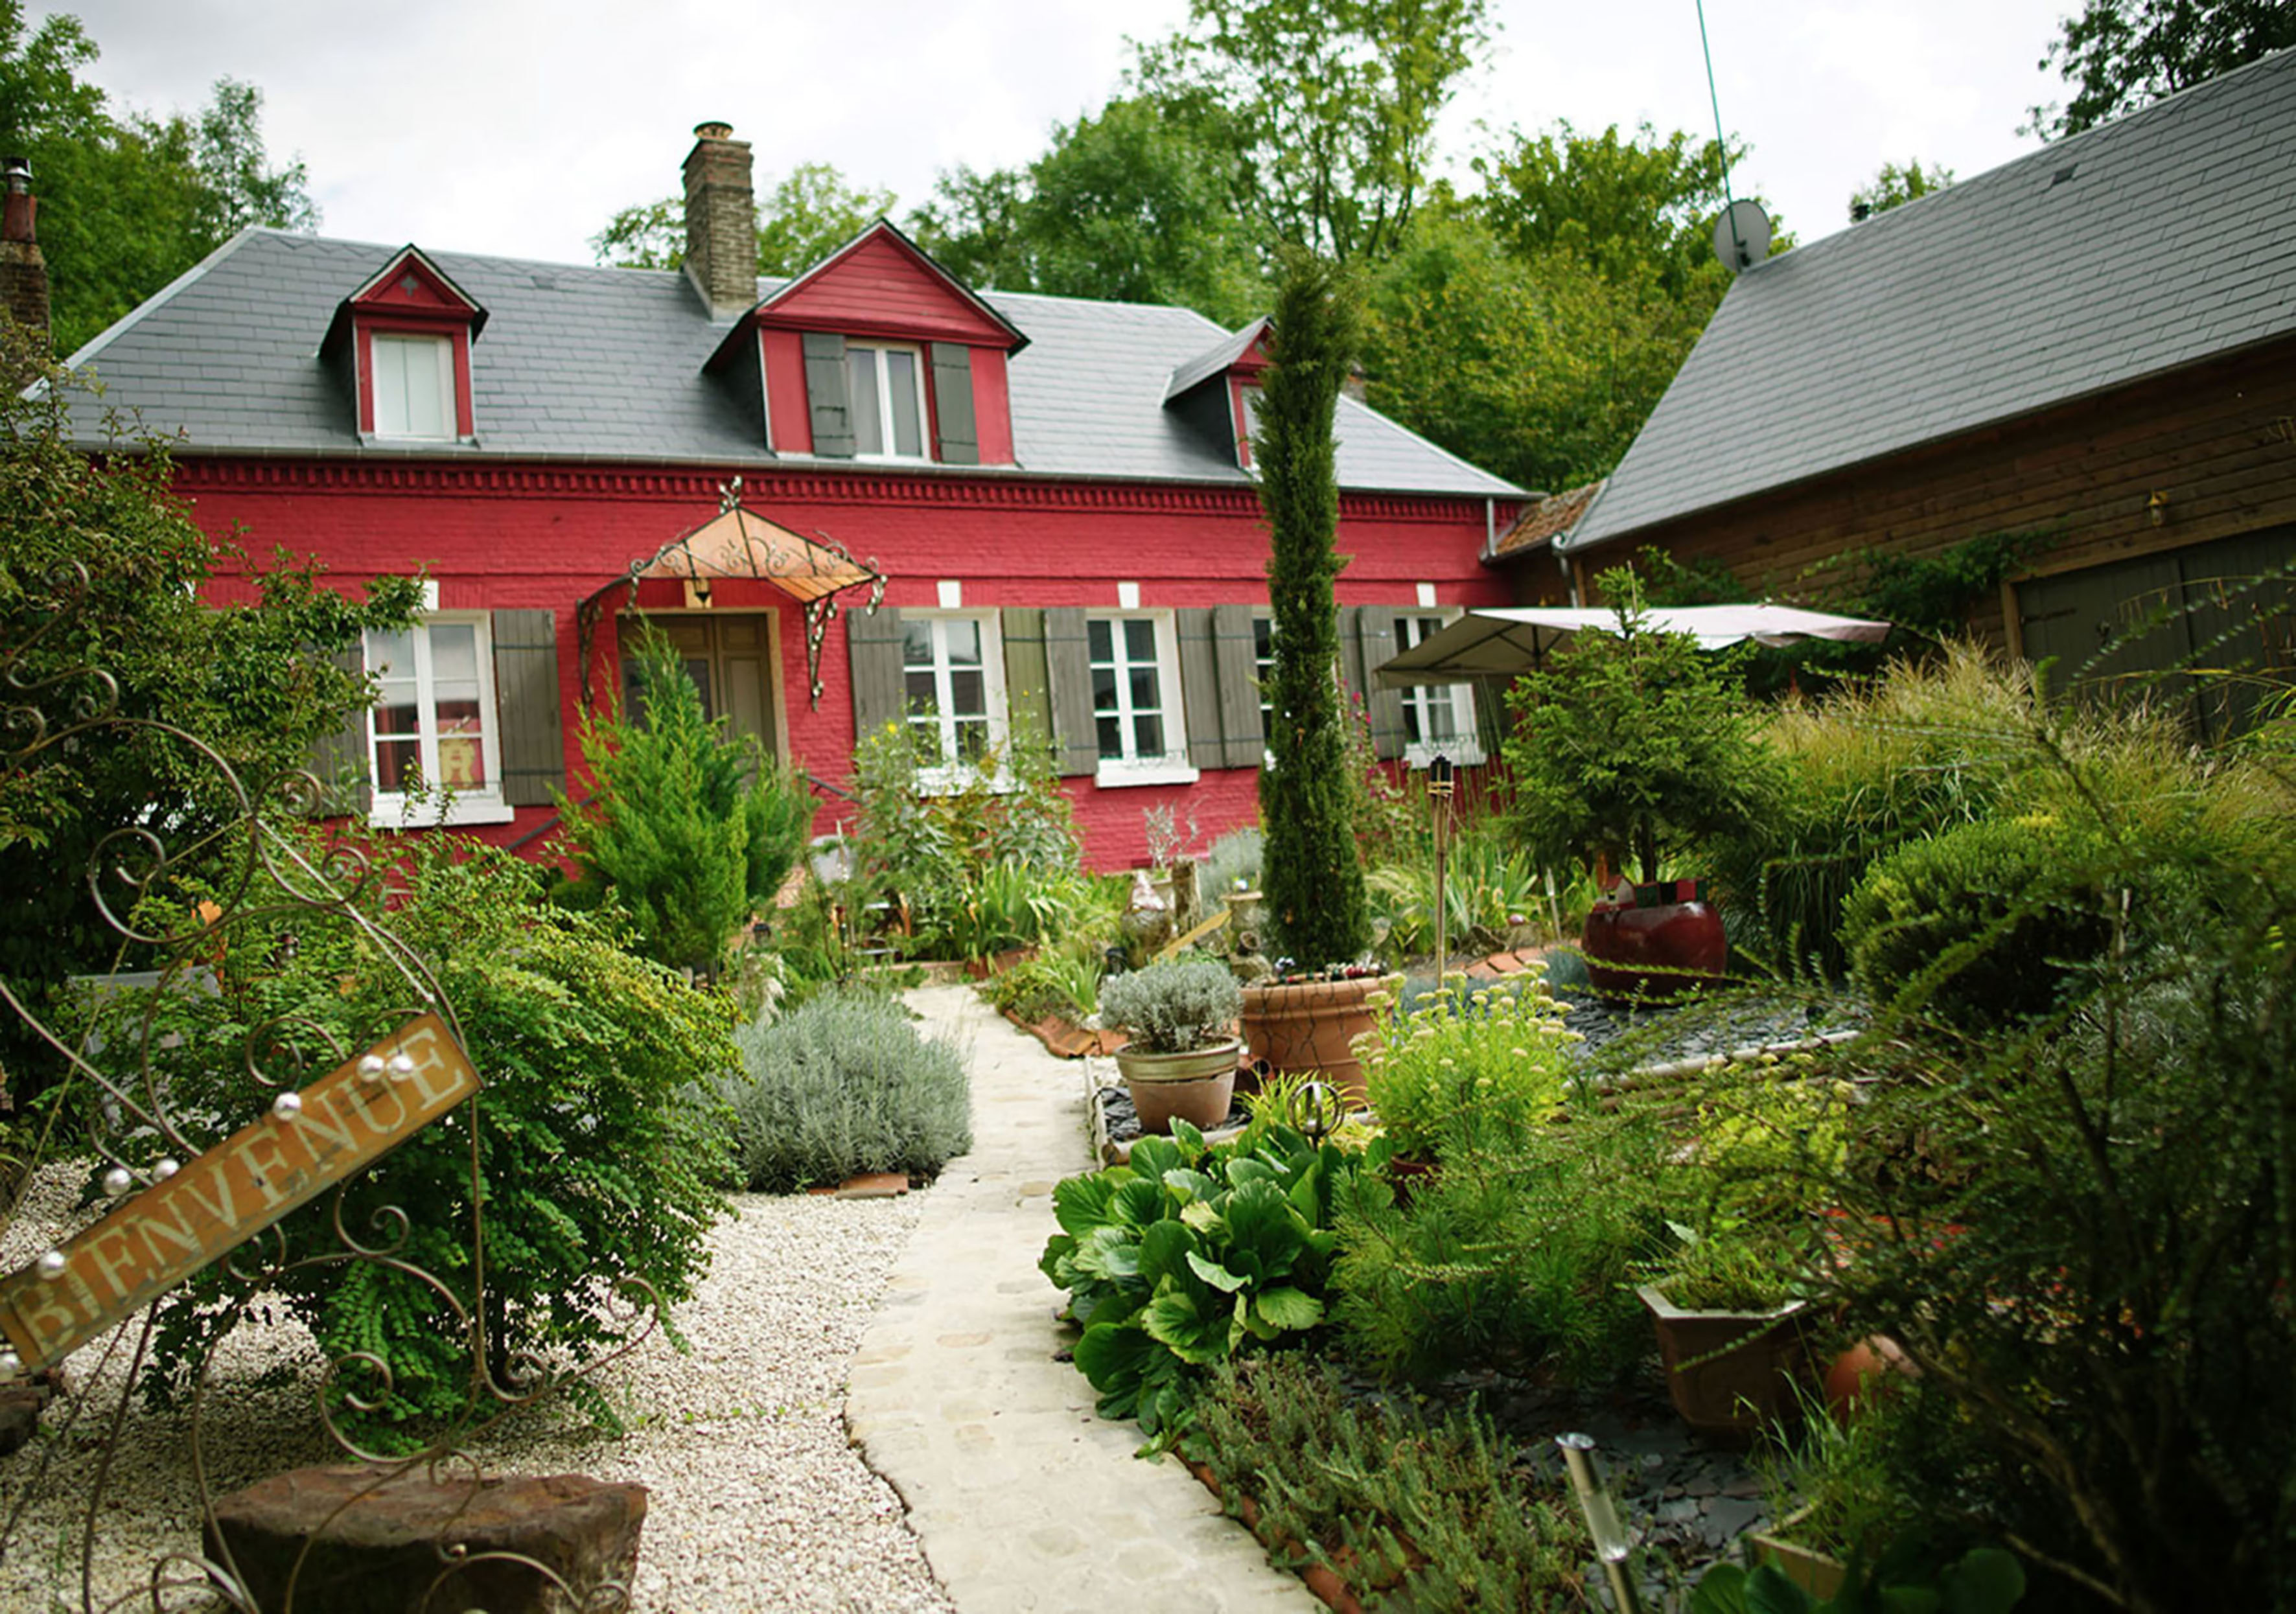 A small house in a garden at Au 2 Maison d'Hôtes.